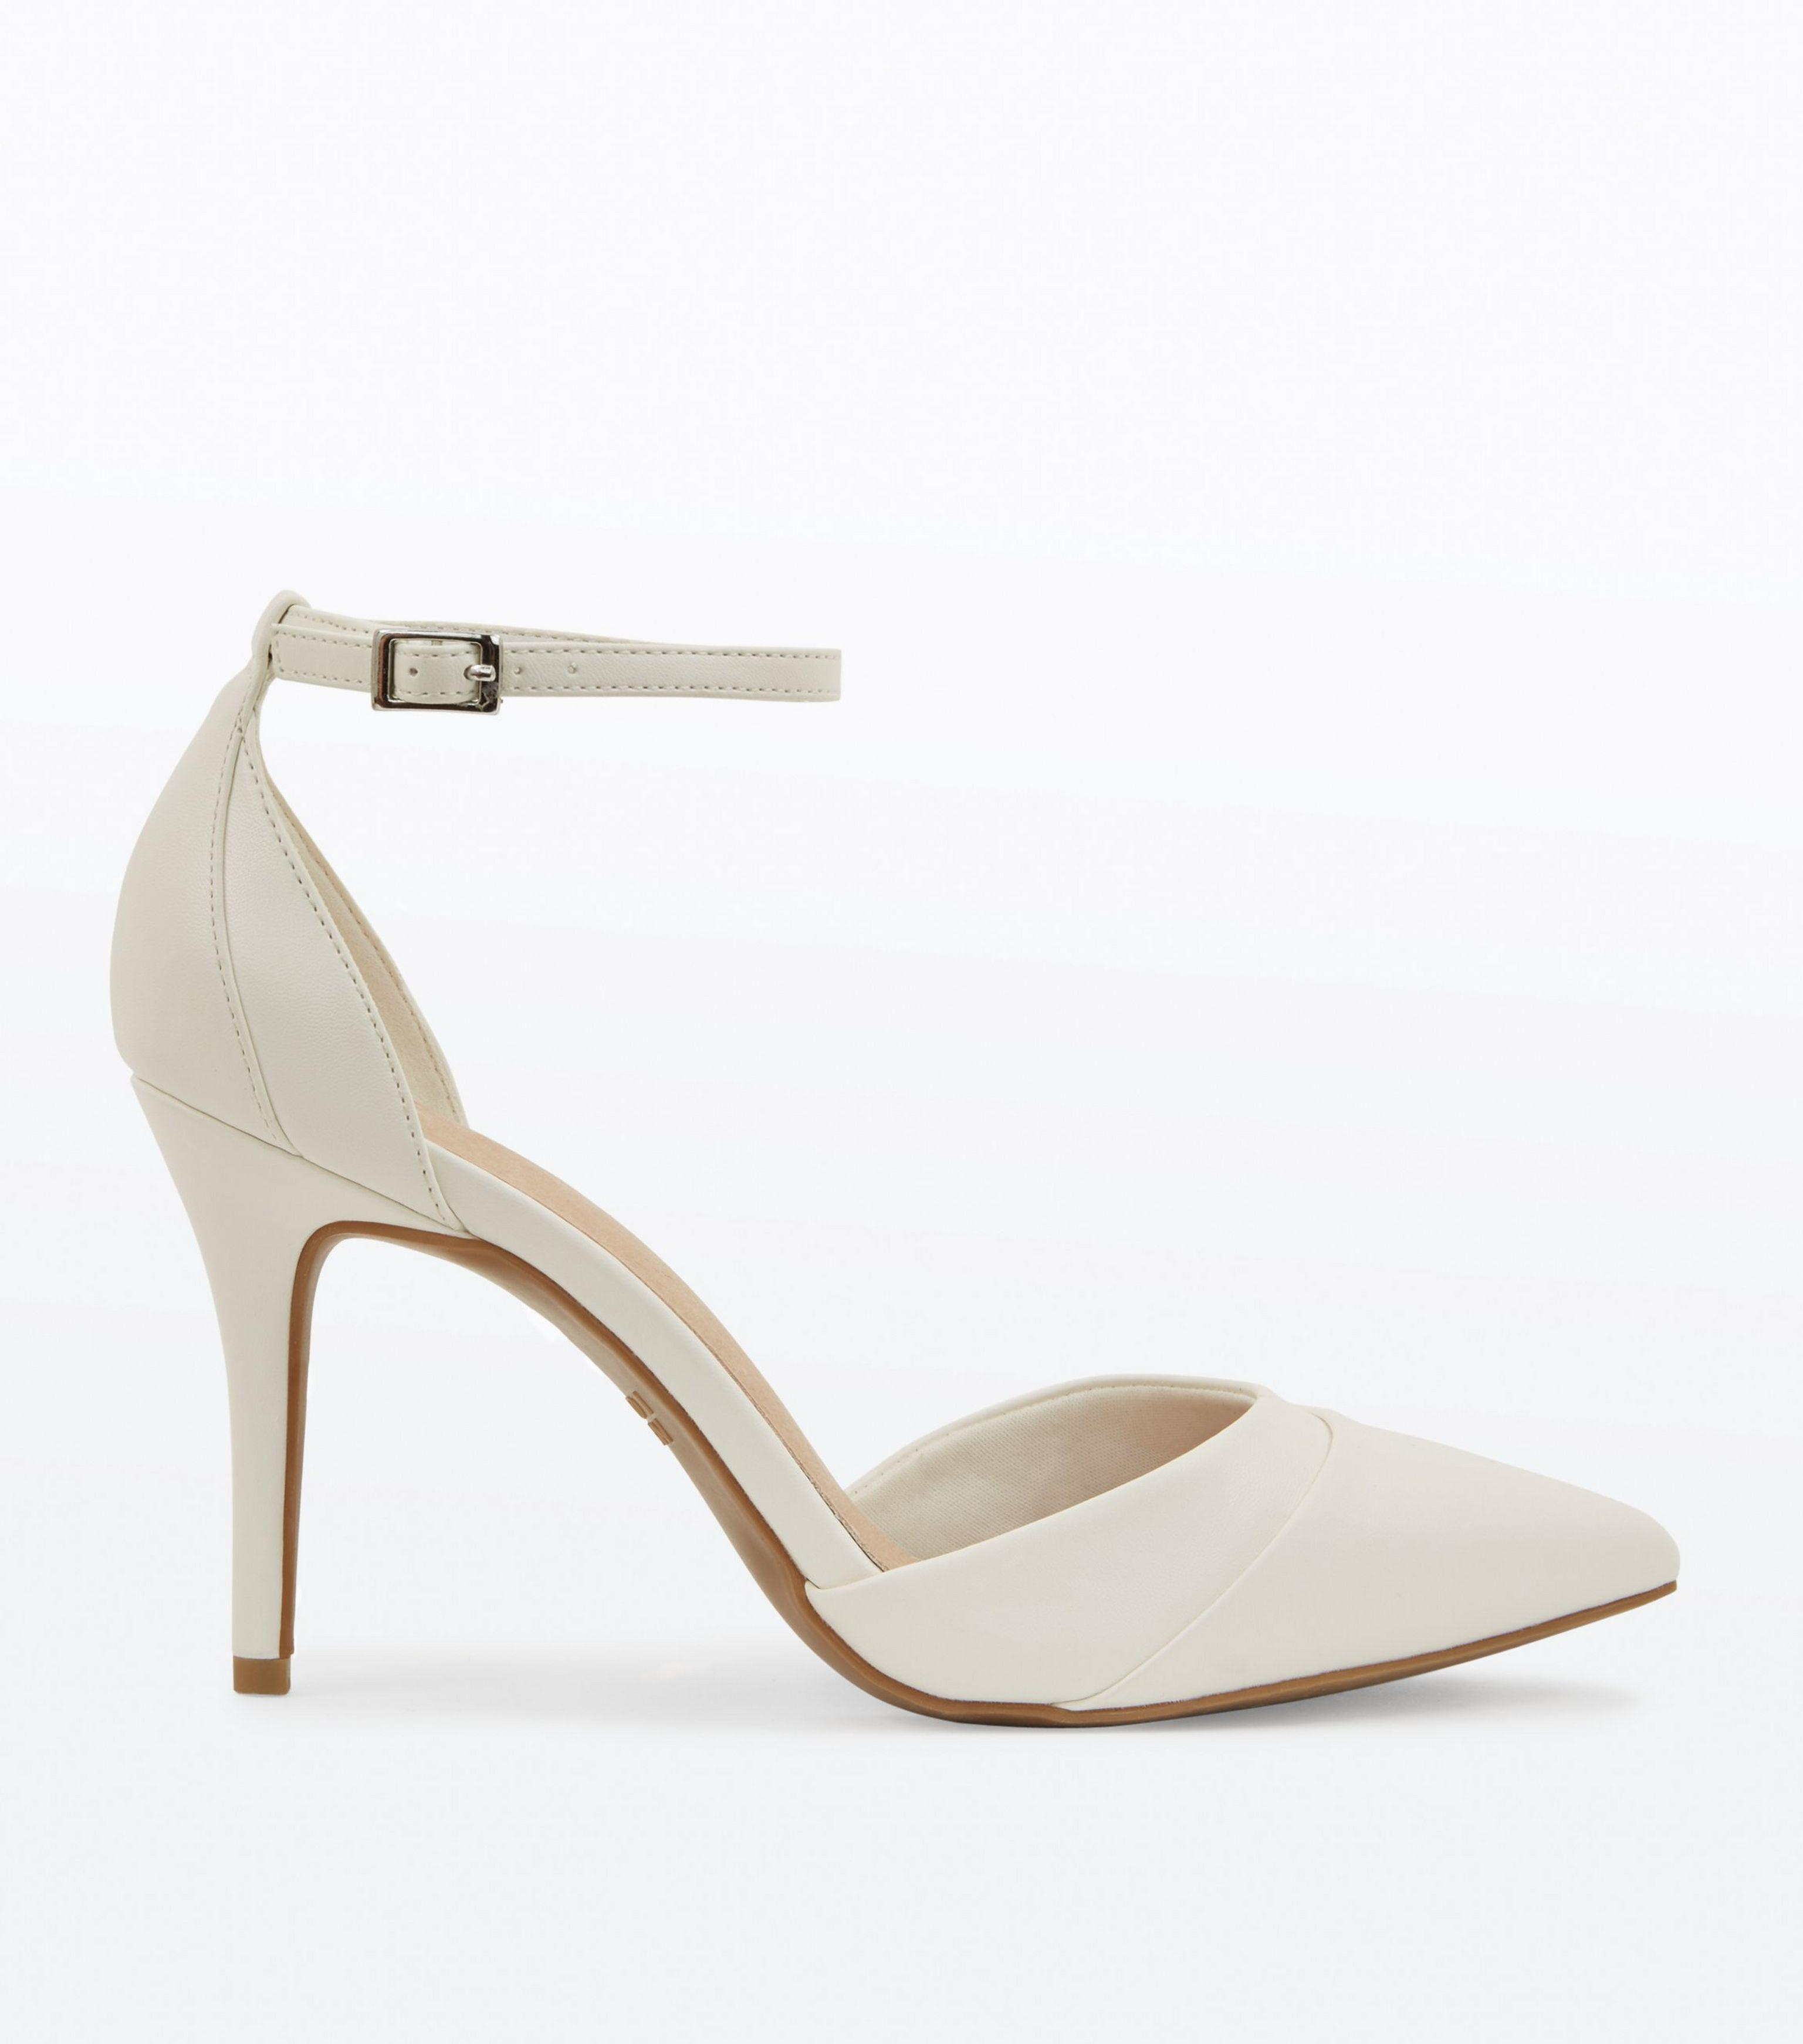 871e5bf88b29 New Look White Comfort Flex Ankle Strap Pointed Heels in White - Lyst